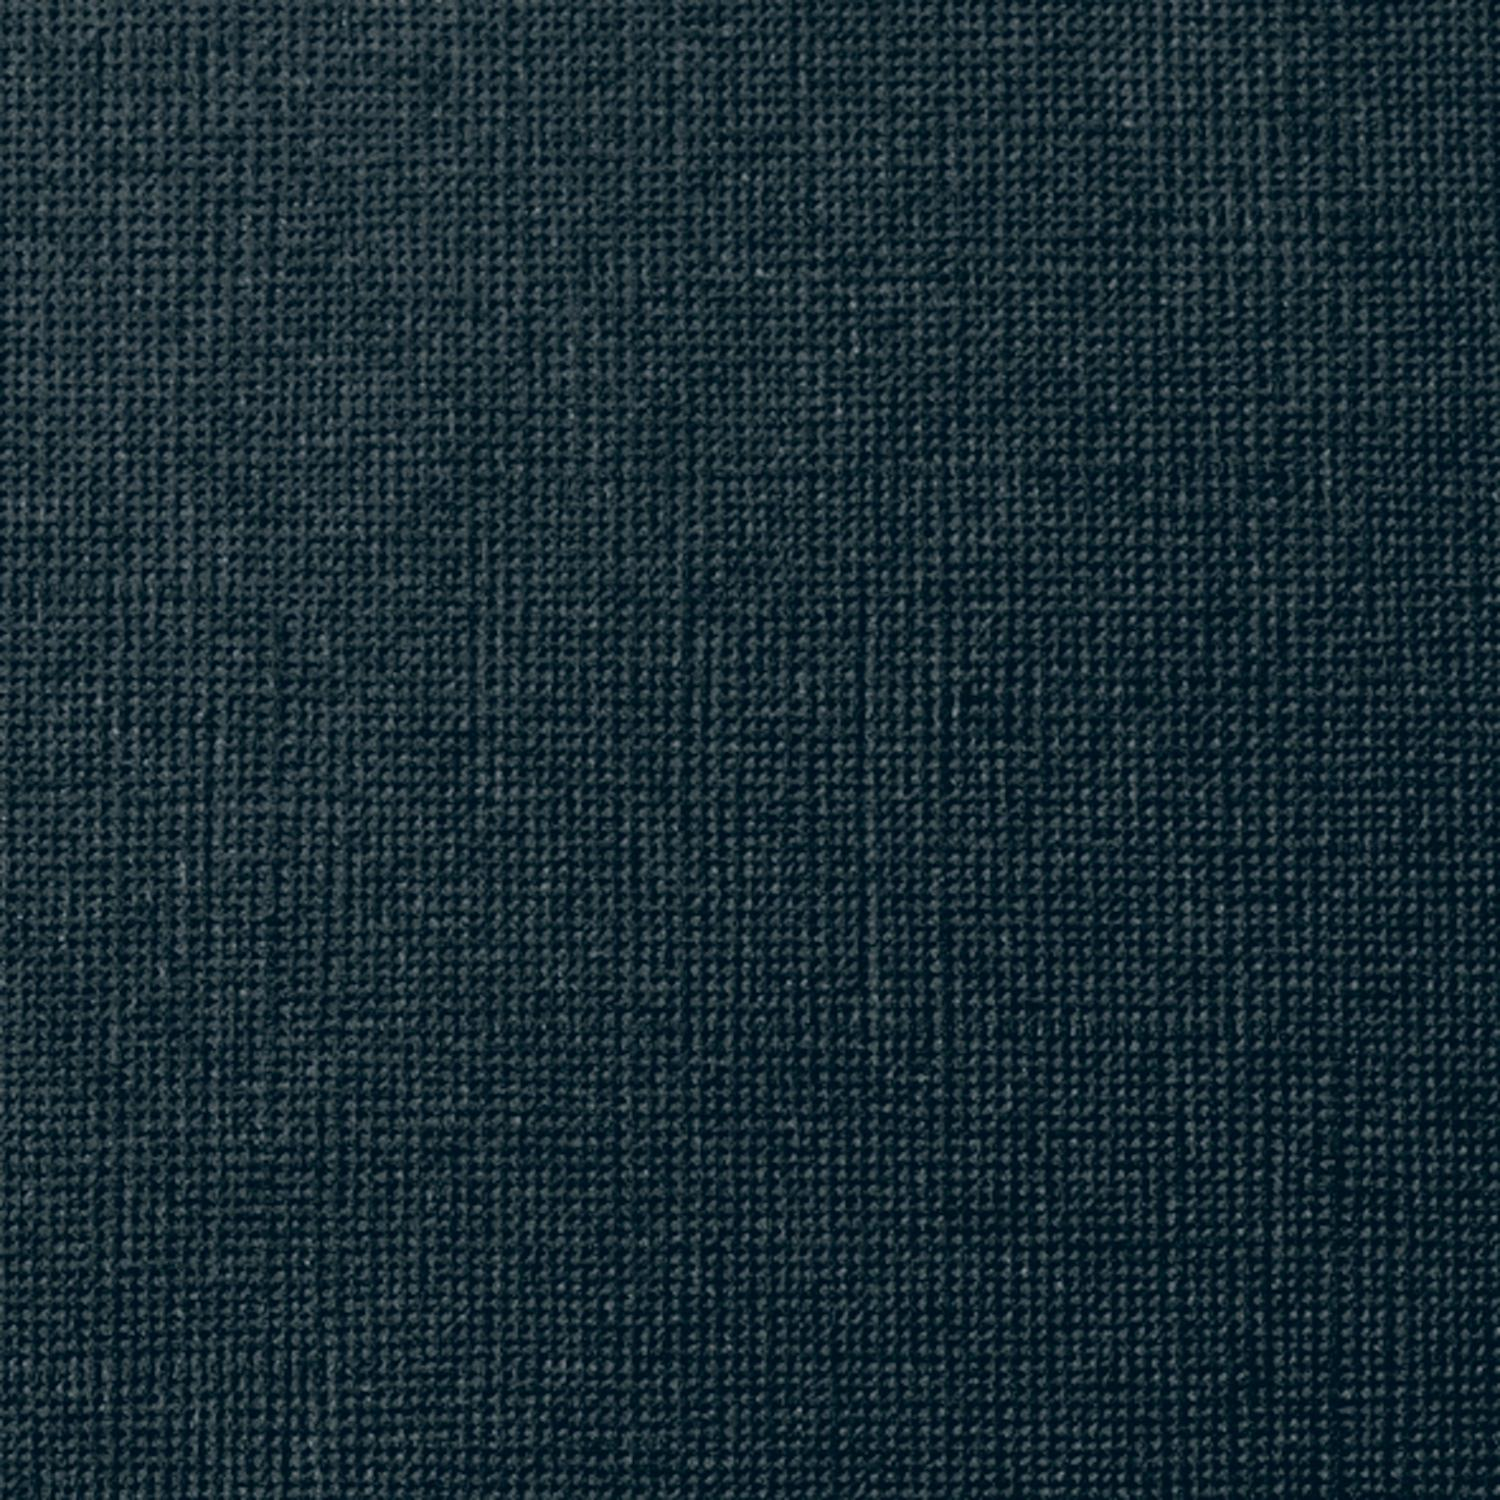 GBC Binding Cover Linen Weave A4 250gsm Black (Pack 100) CE050010